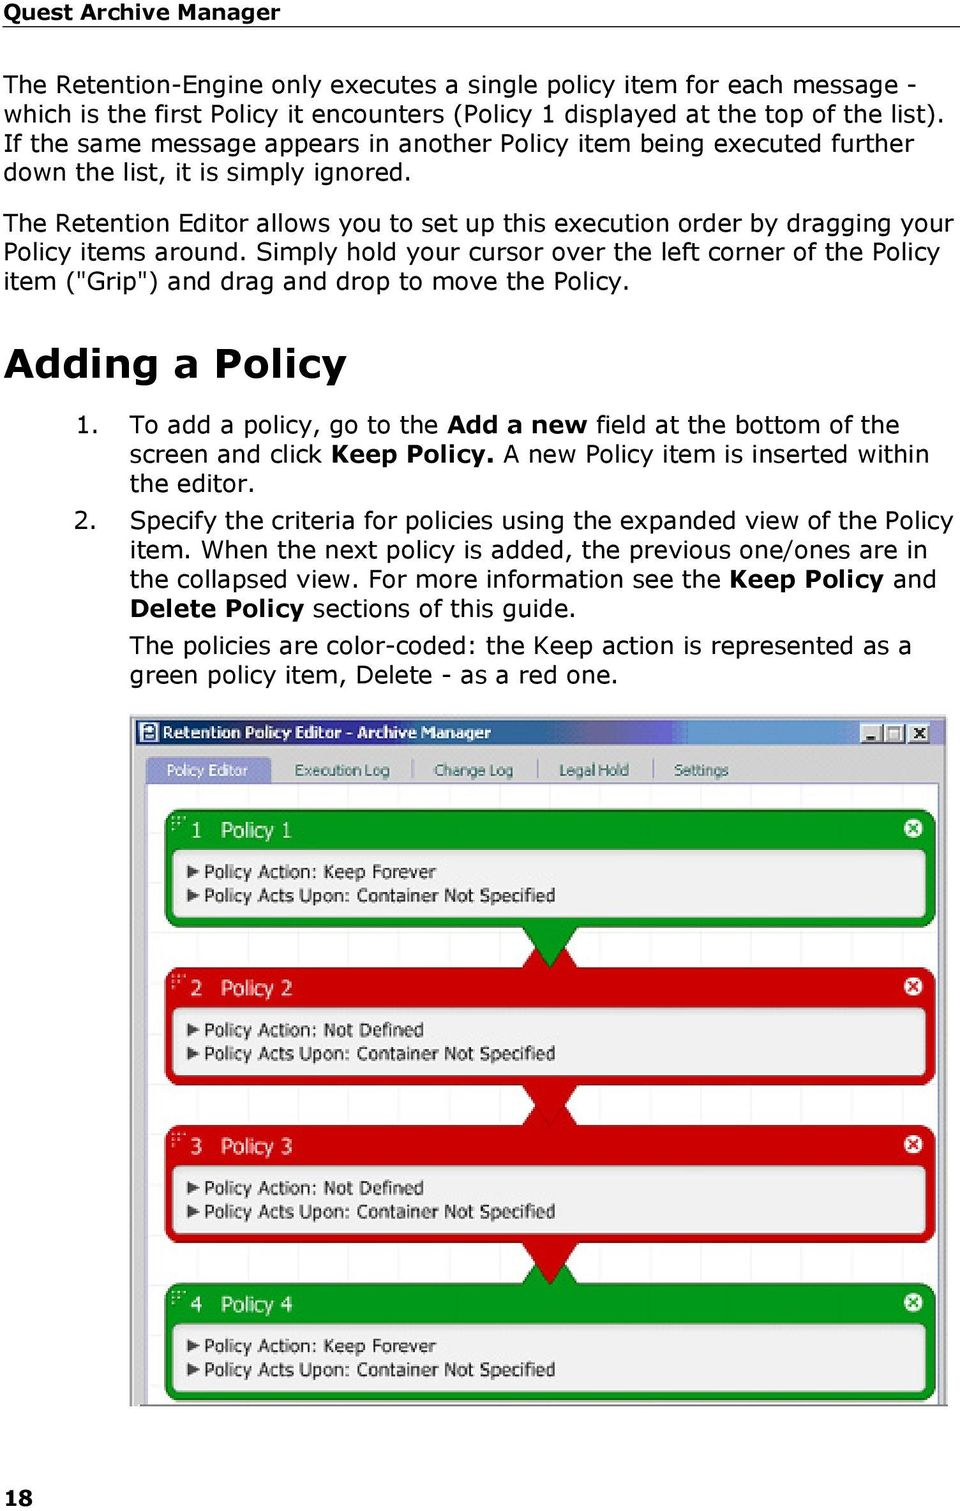 The Retention Editor allows you to set up this execution order by dragging your Policy items around.